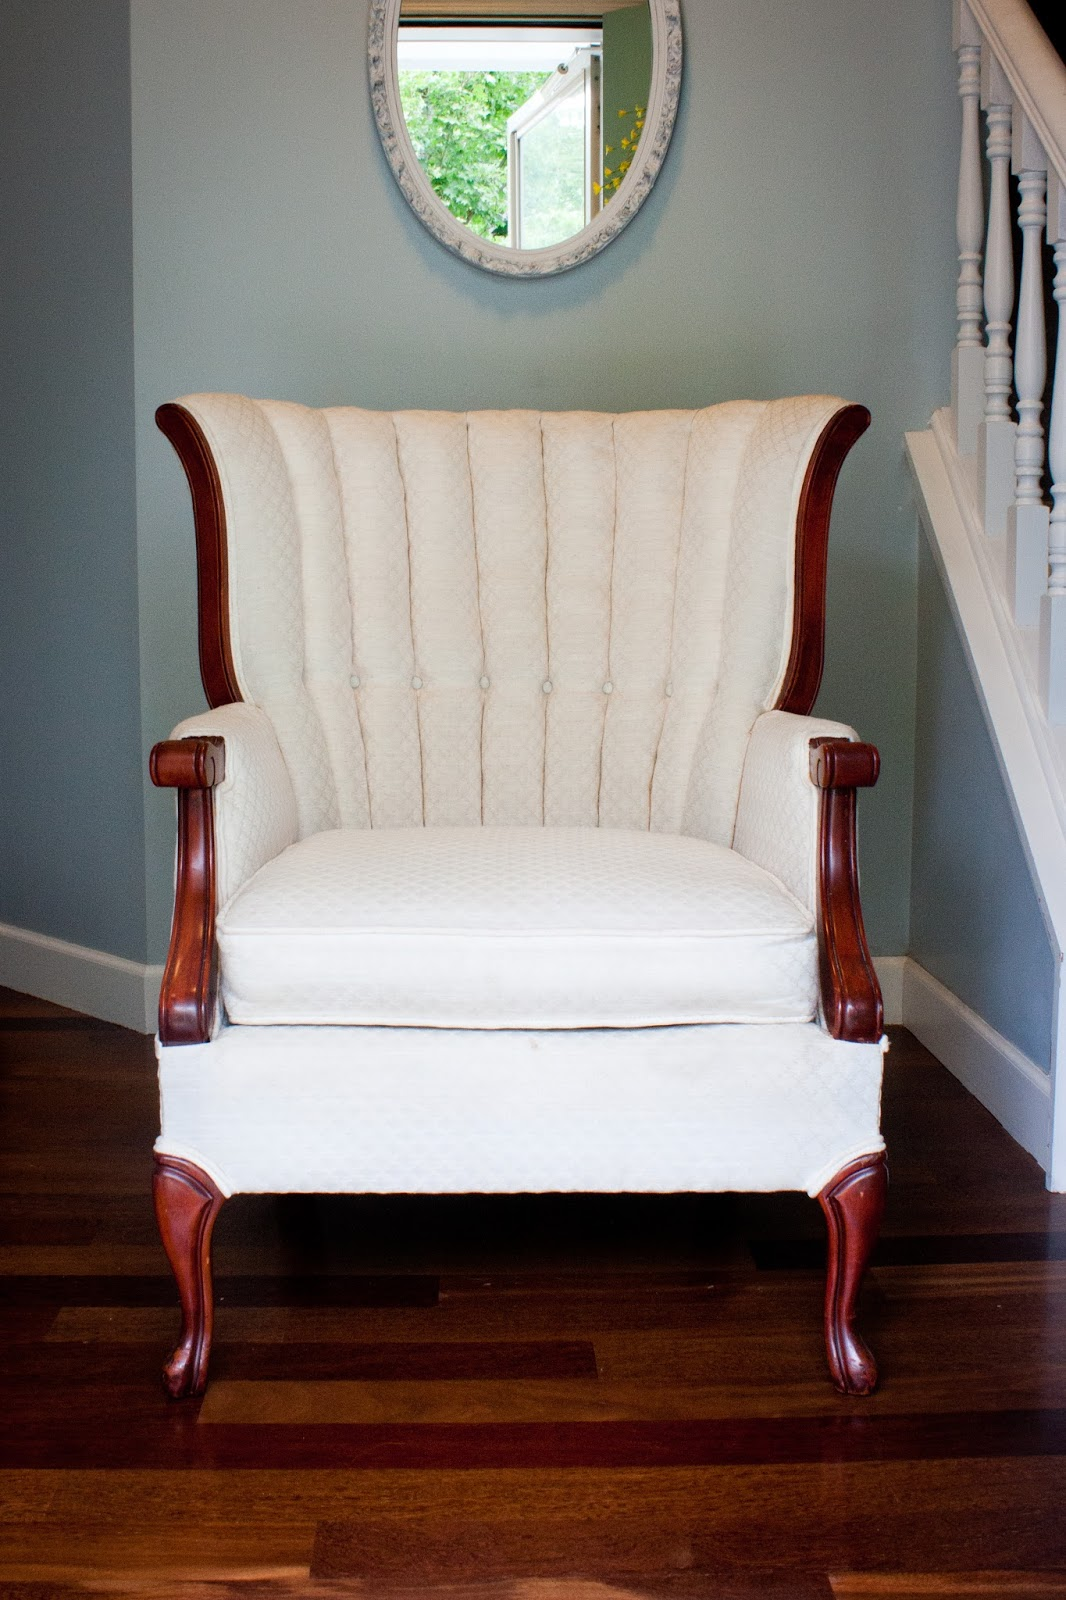 Wedding Rental MN   Vintage Furniture Rentals   Cream Upholstered Wingback  Chair   Prop Photoshoot Rental